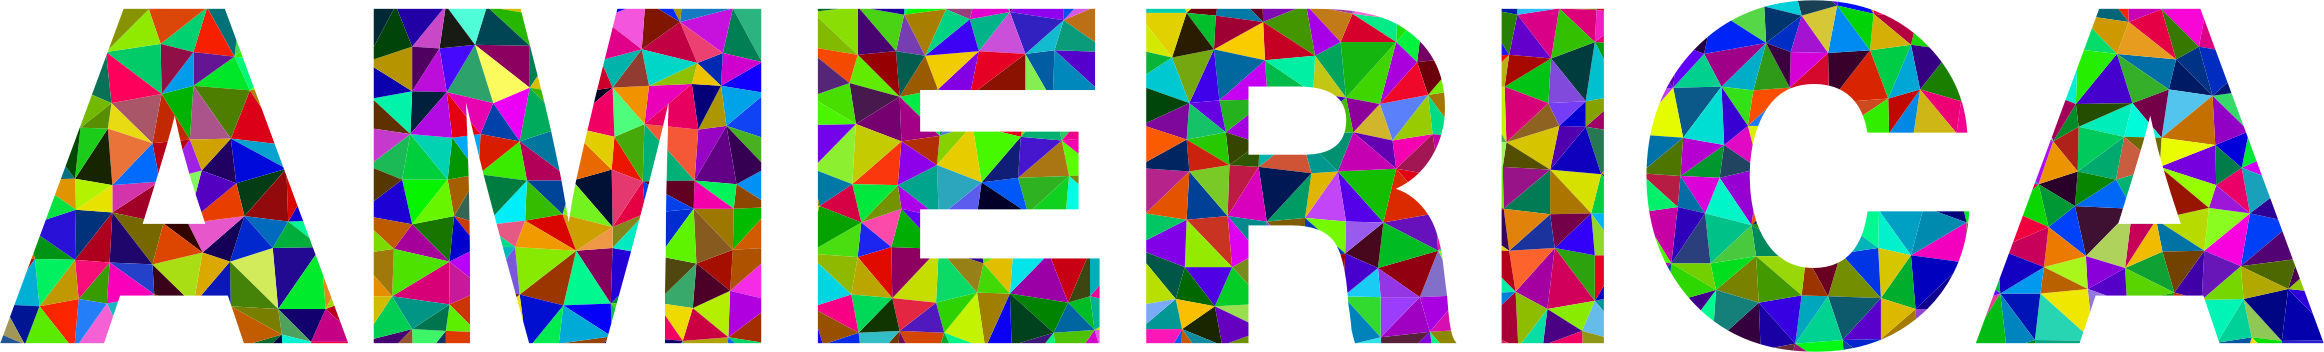 Prismatic Low Poly America Typography by GDJ